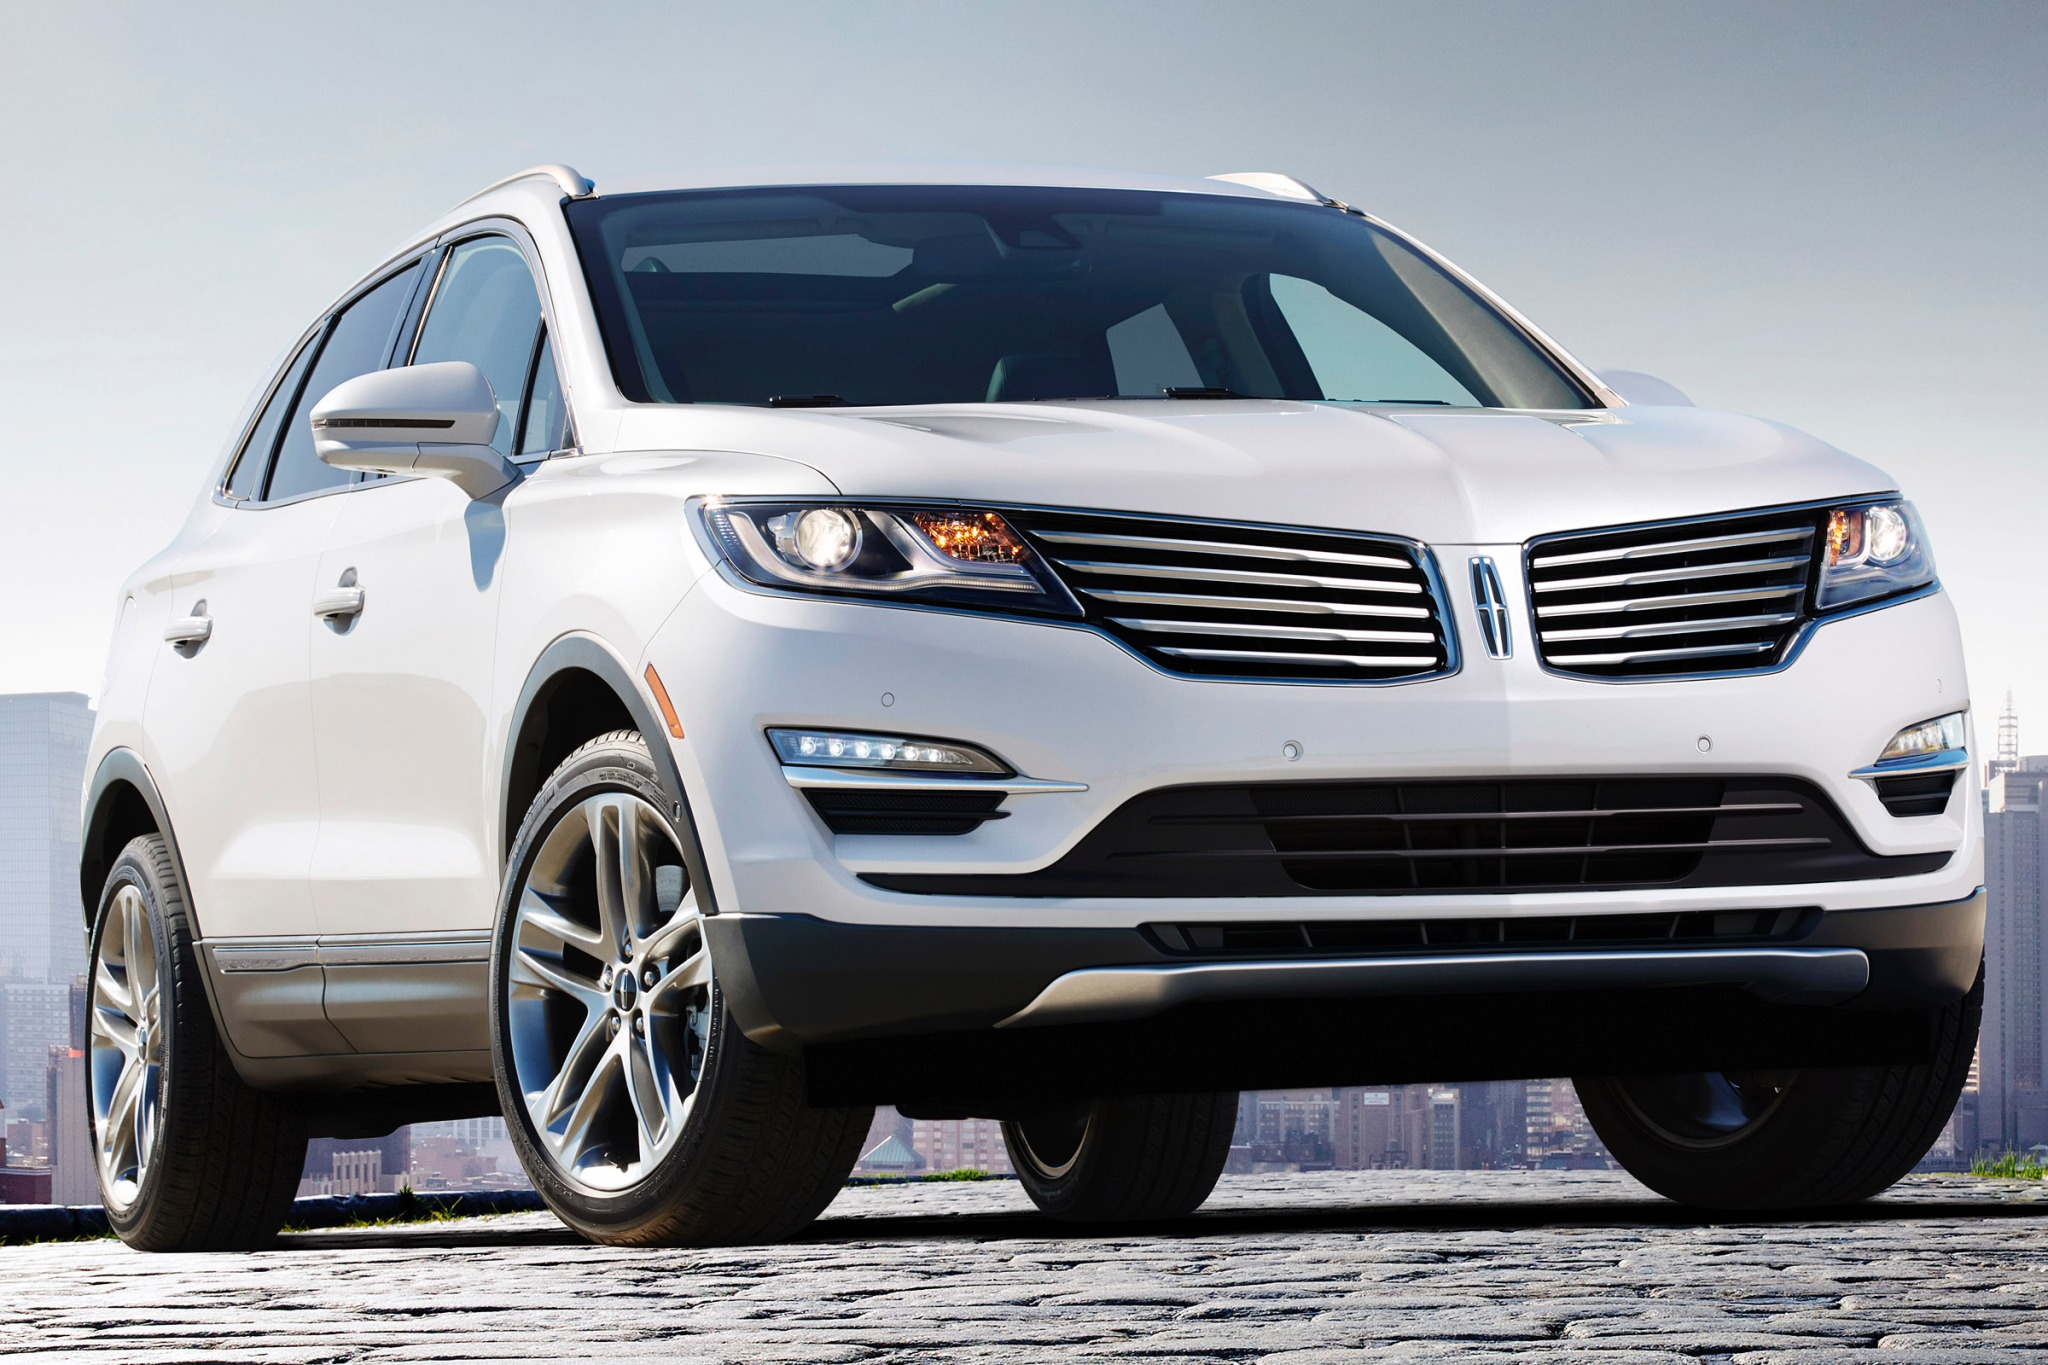 2015 Lincoln MKC 4dr SUV  exterior #4